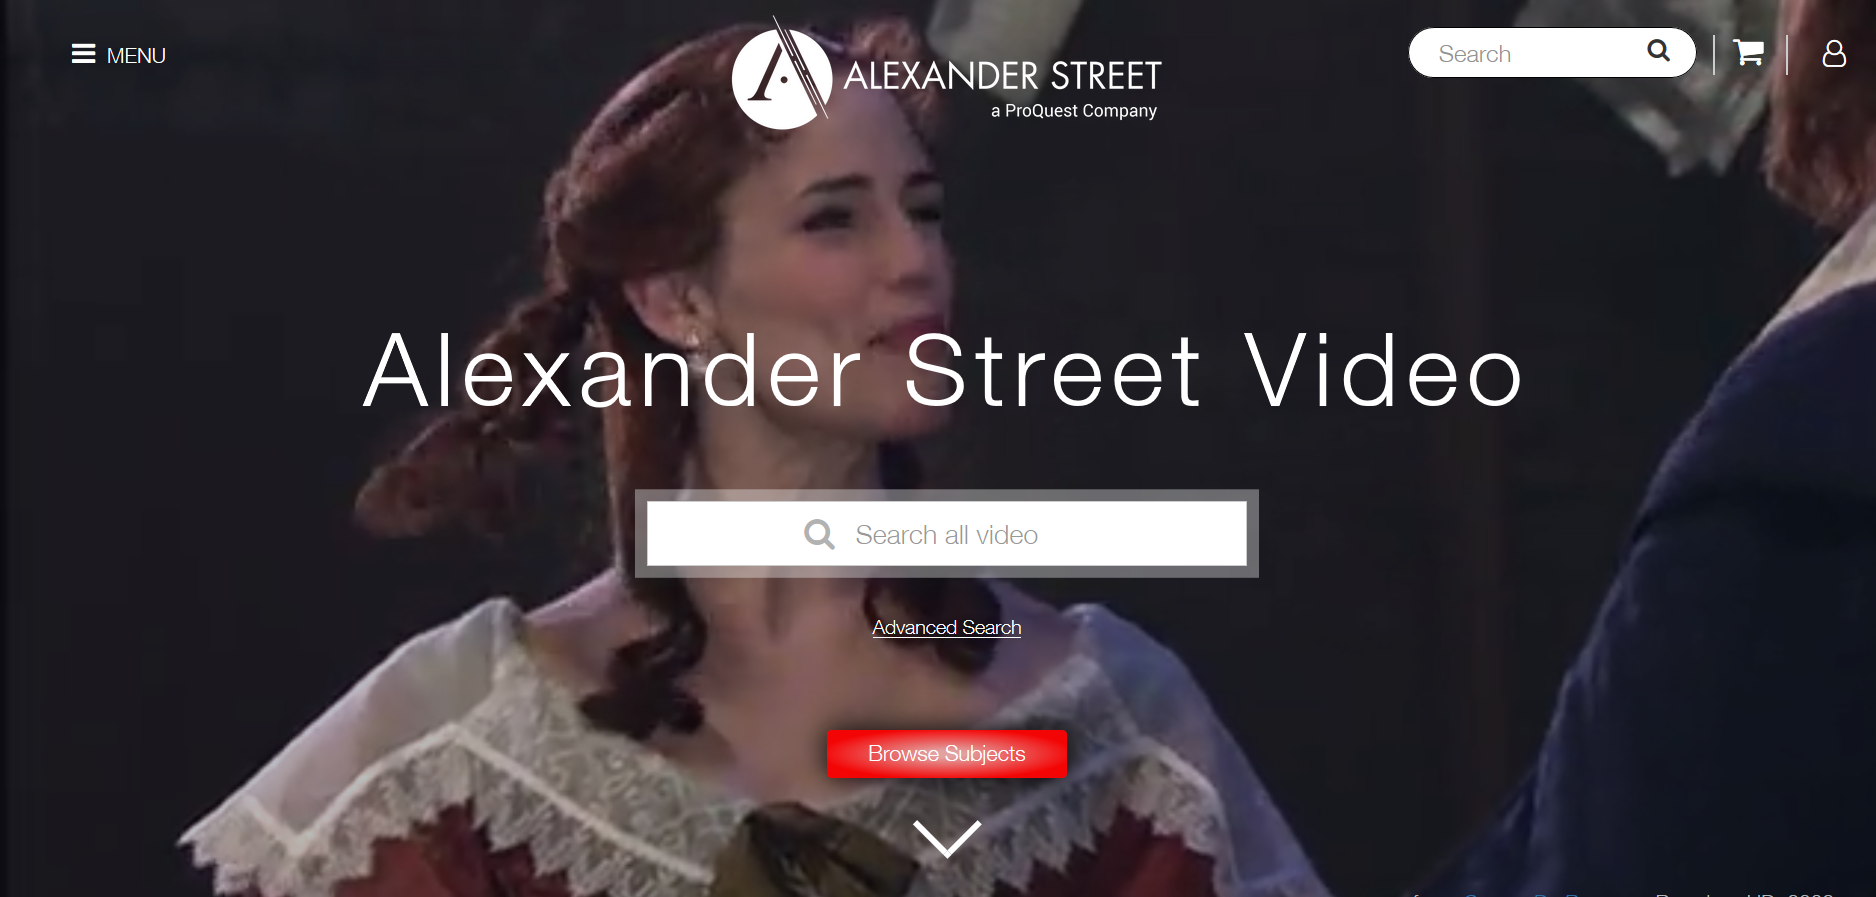 Sreen shot of Alexander Street Video home page